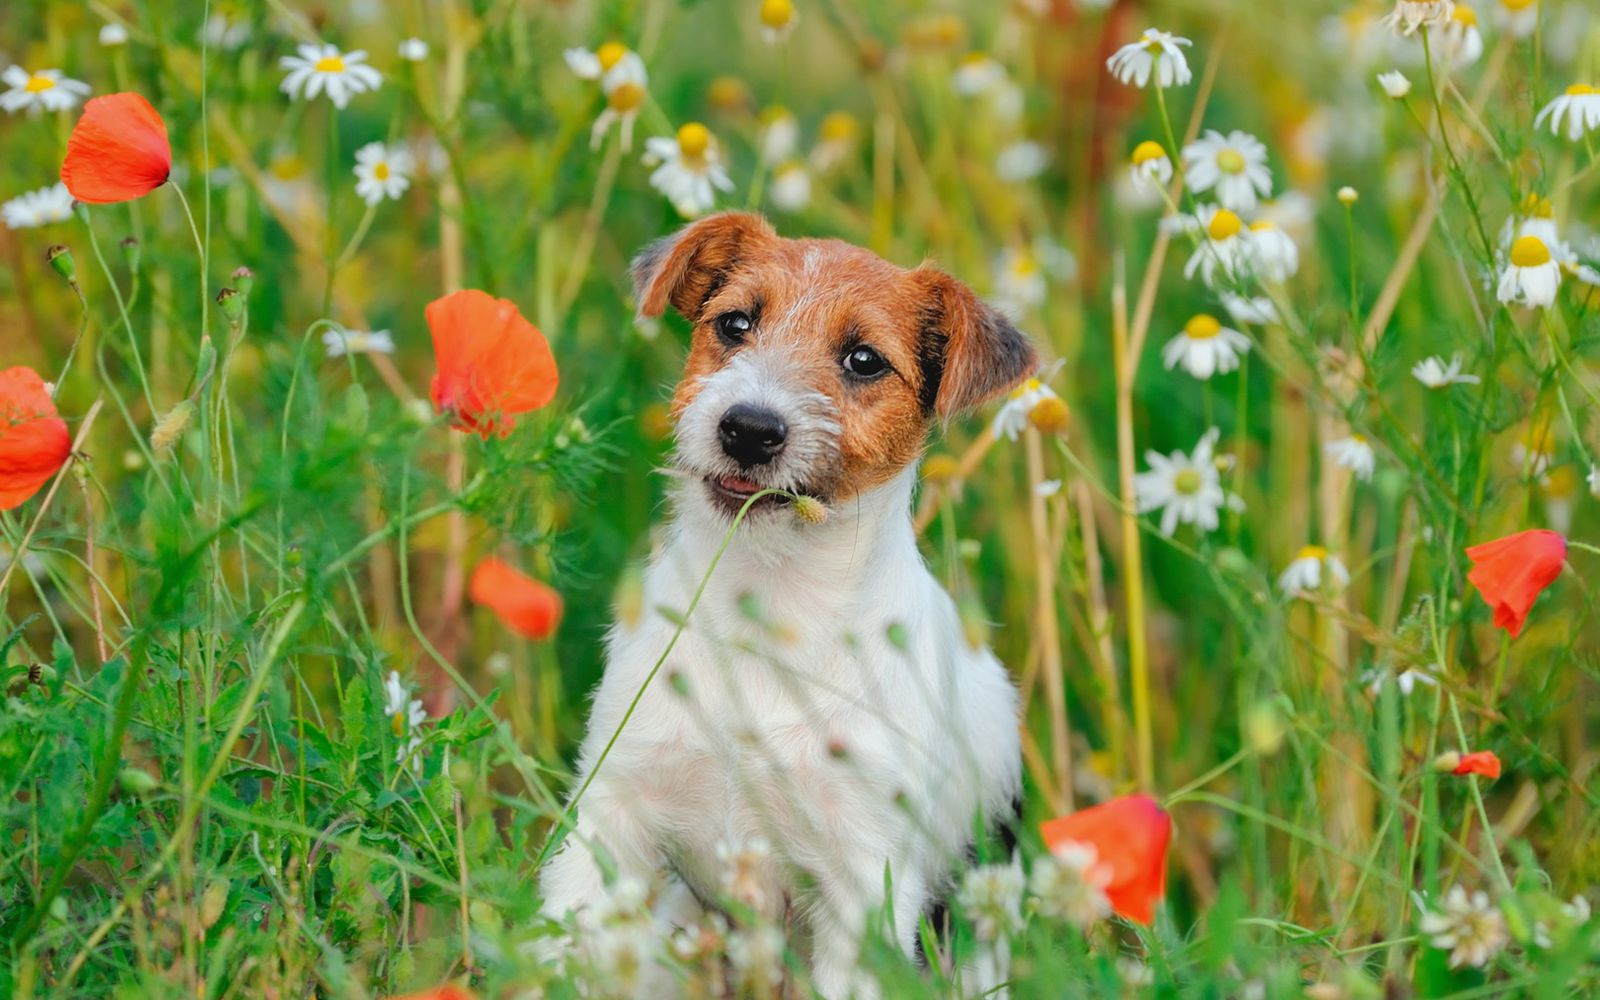 Jack Russell Terrier - Puppy